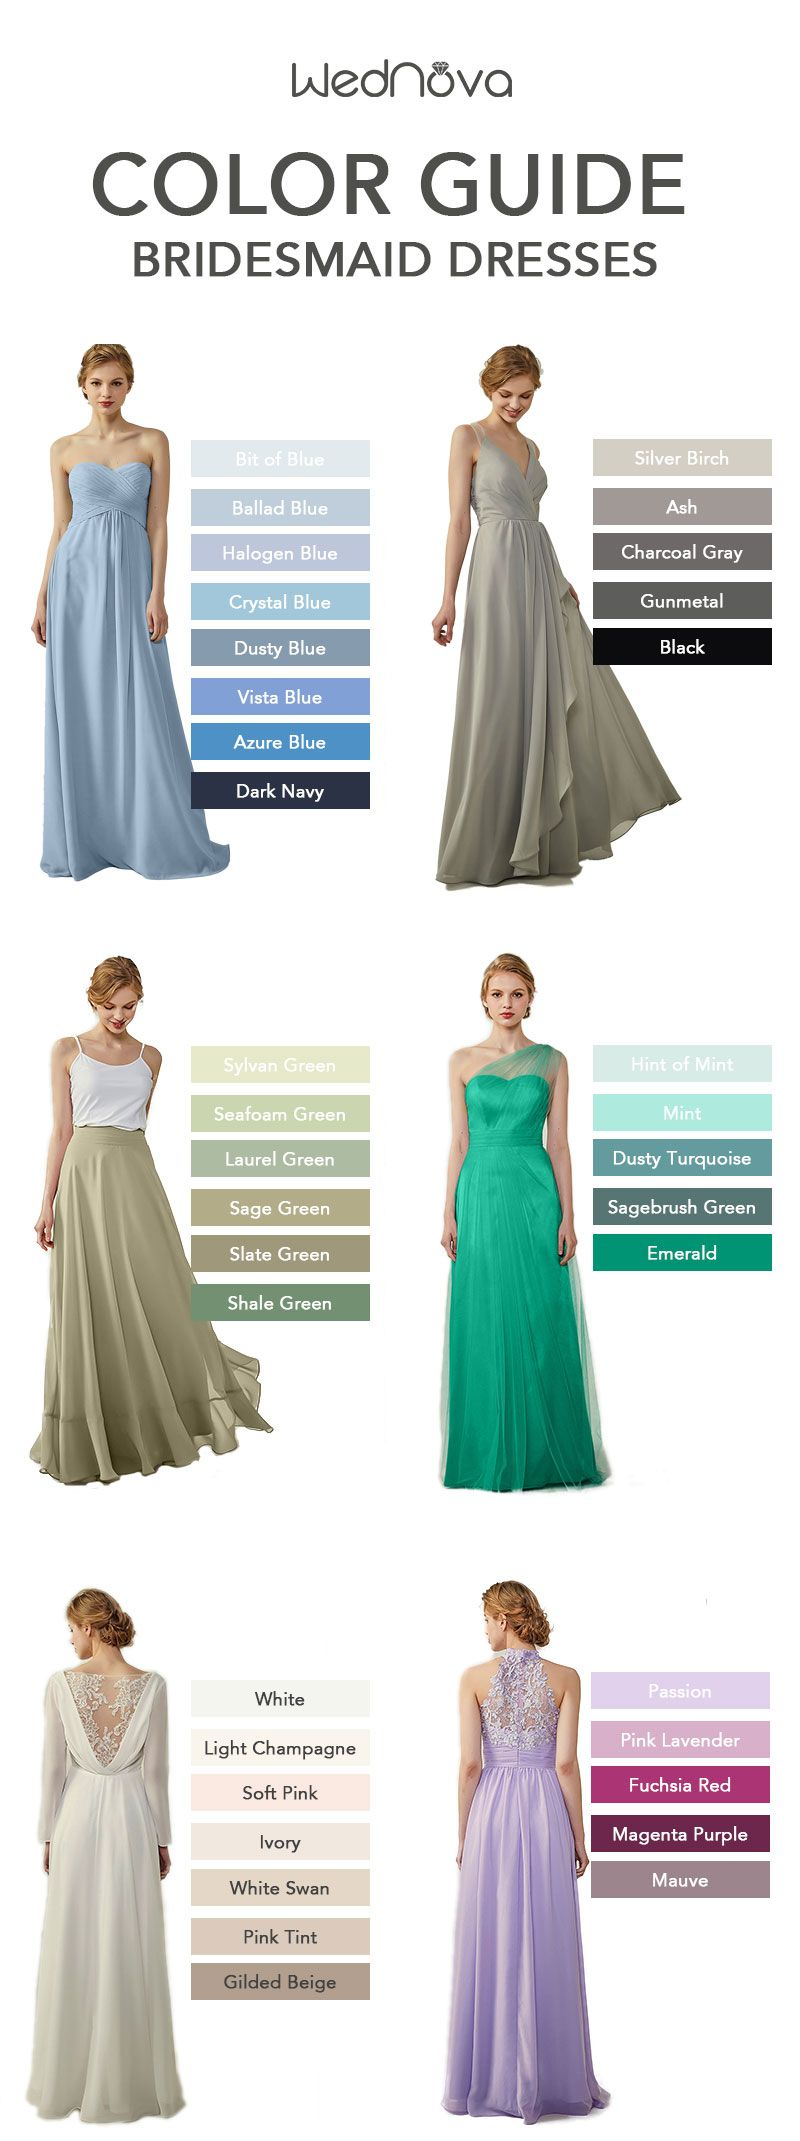 Best Bridesmaid Dresses Colors Blue Gray Green Neutral Purple Bridesmaids Bridesmaiddresses Mix Turquoise Bridesmaid Bridesmaid Colors Bridesmaid Dress Colors,Vital Proteins Collagen Peptides Amazon Canada